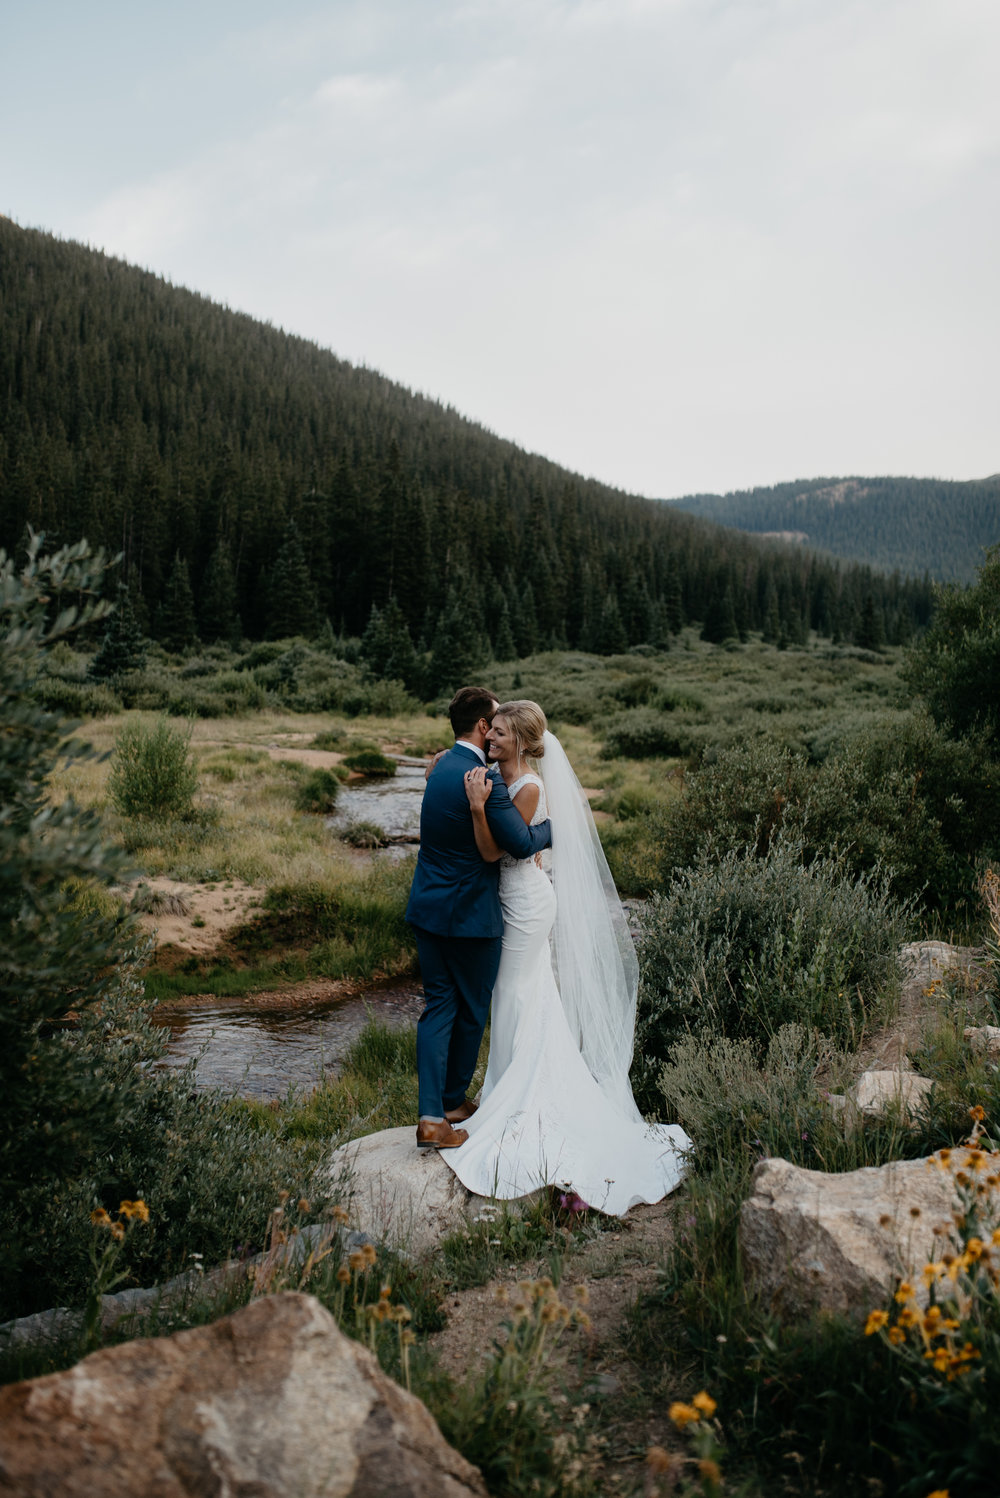 Photos by Alyssa Reinhold of a Guanella Pass elopement in Colorado.